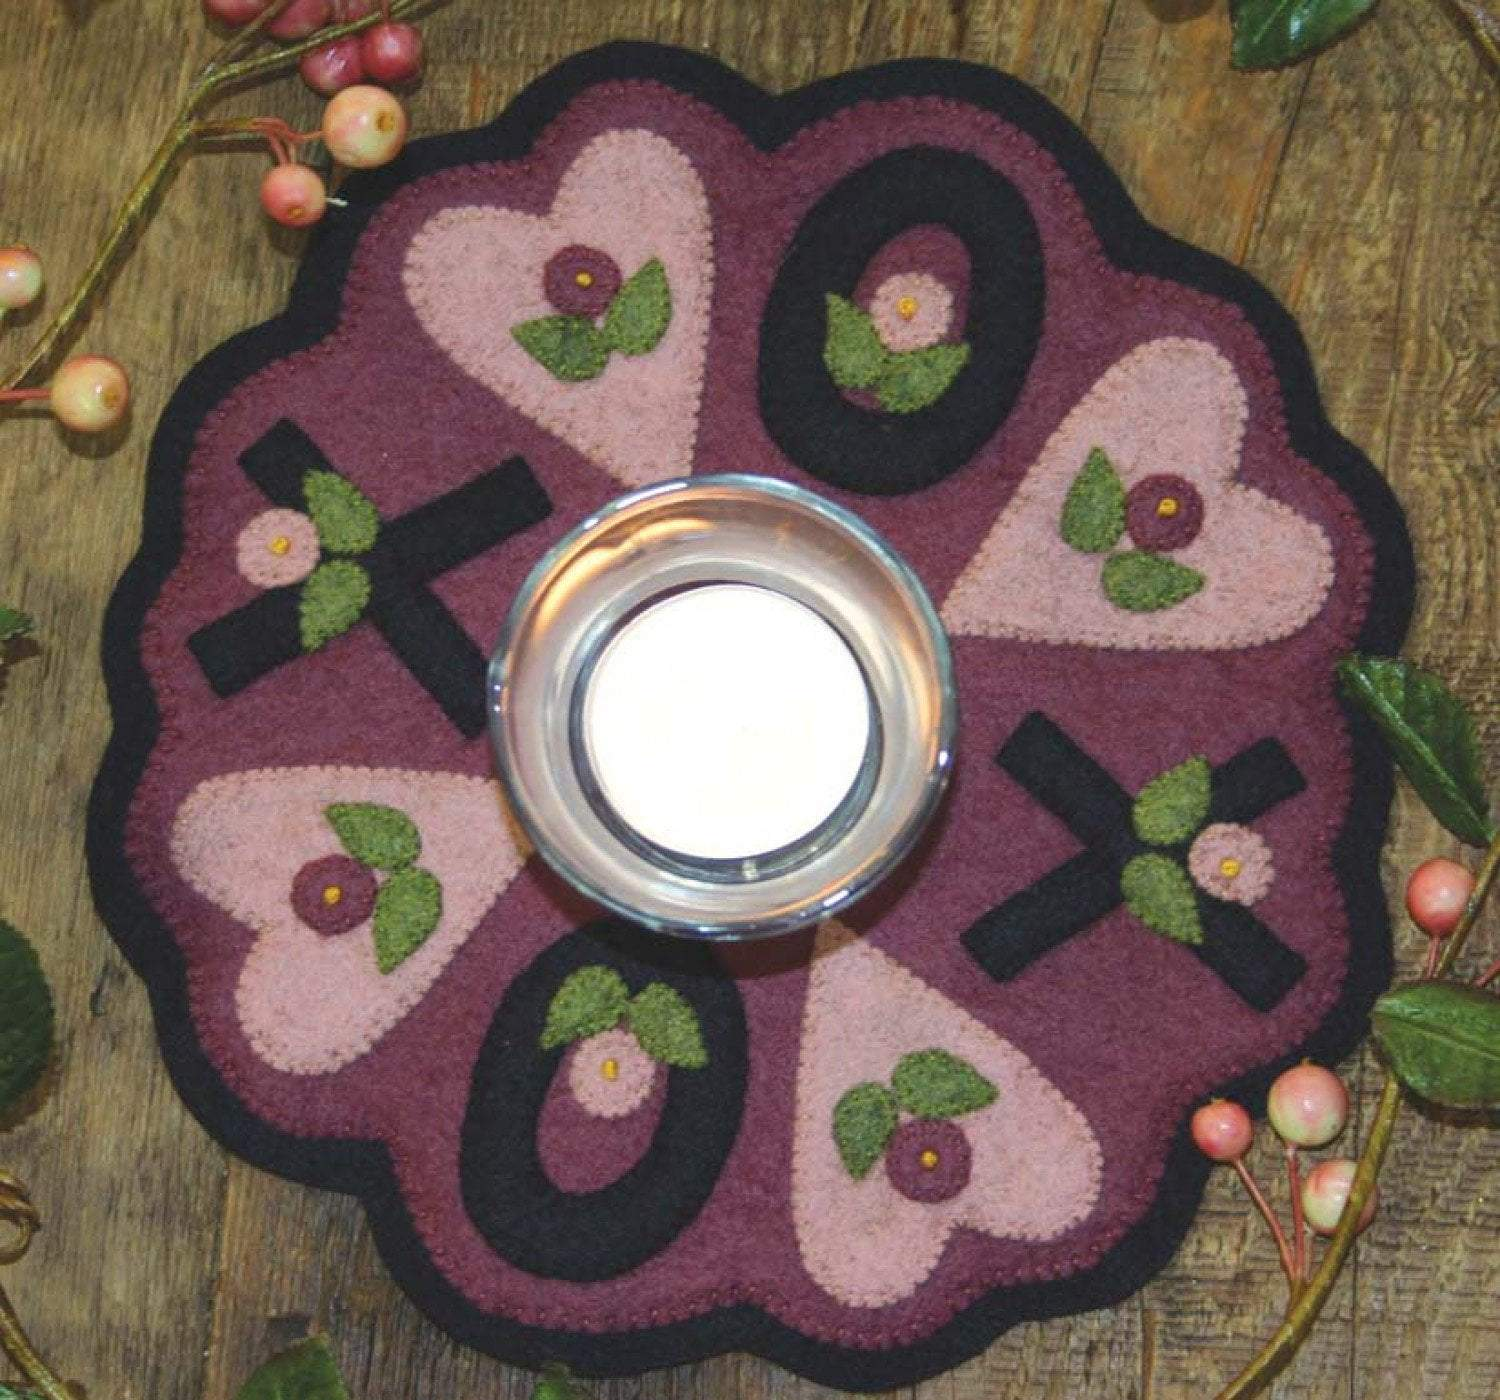 Little Stitchies Wool Felt PATTERN- X's & O's Candle Mat or table topper - Bareroots by Barri Sue Gaudet - Primitive - hearts - RebsFabStash